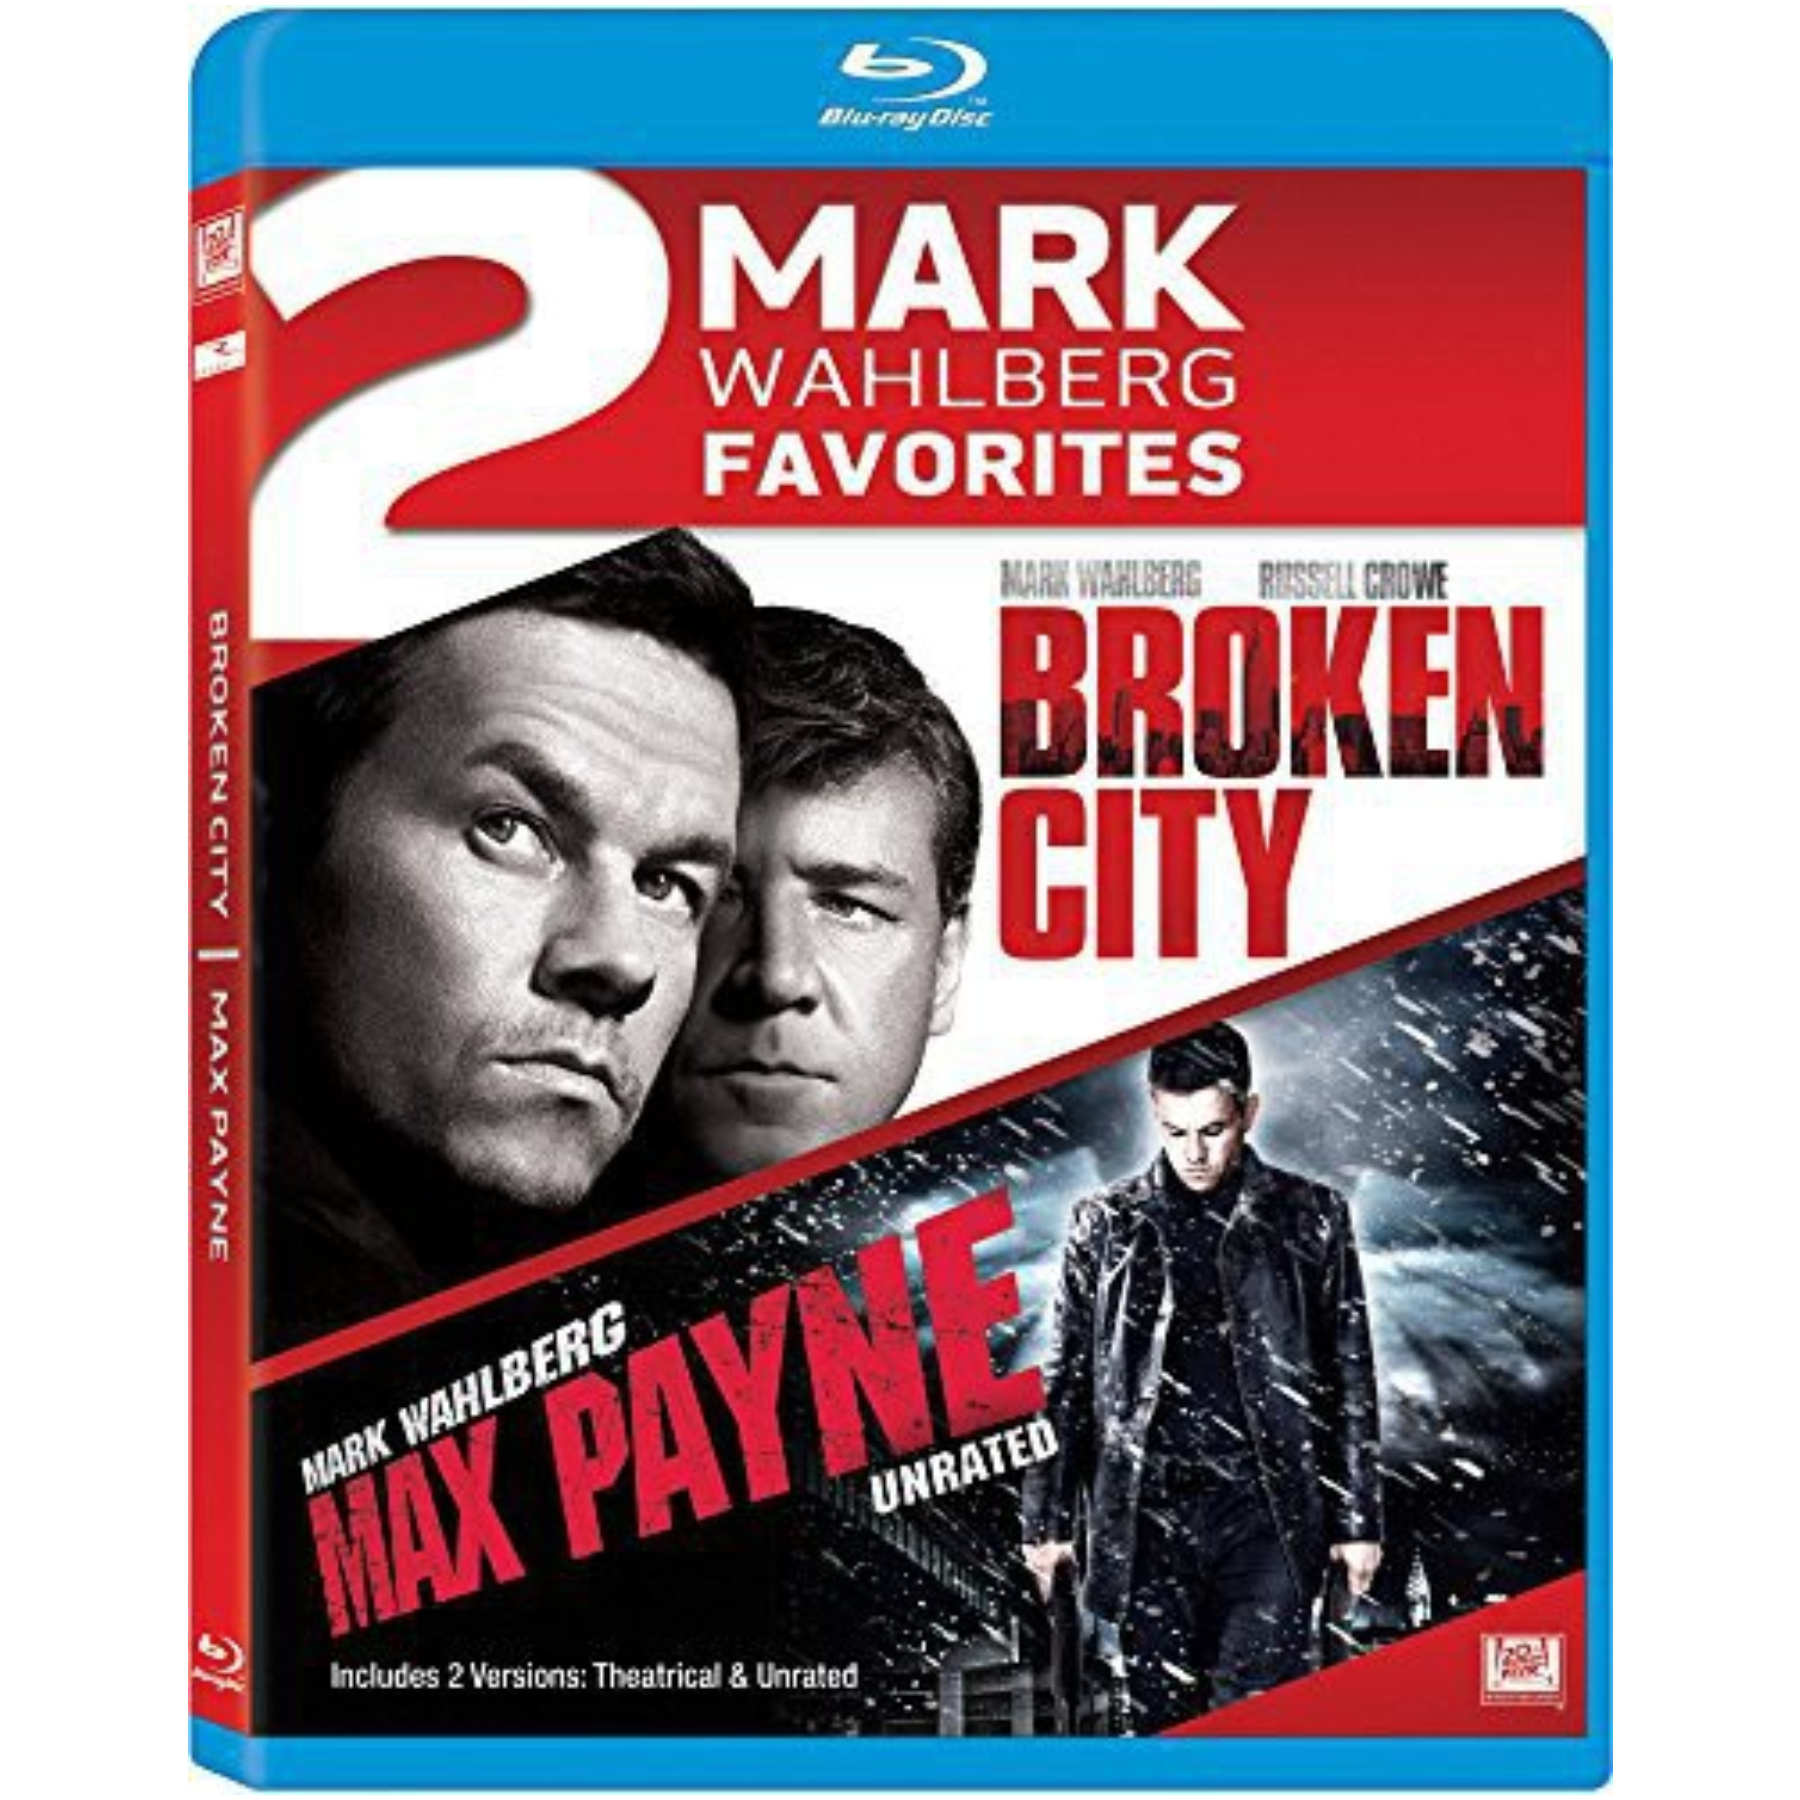 Broken City / Max Payne Double Feature Blu-Ray 02454398833